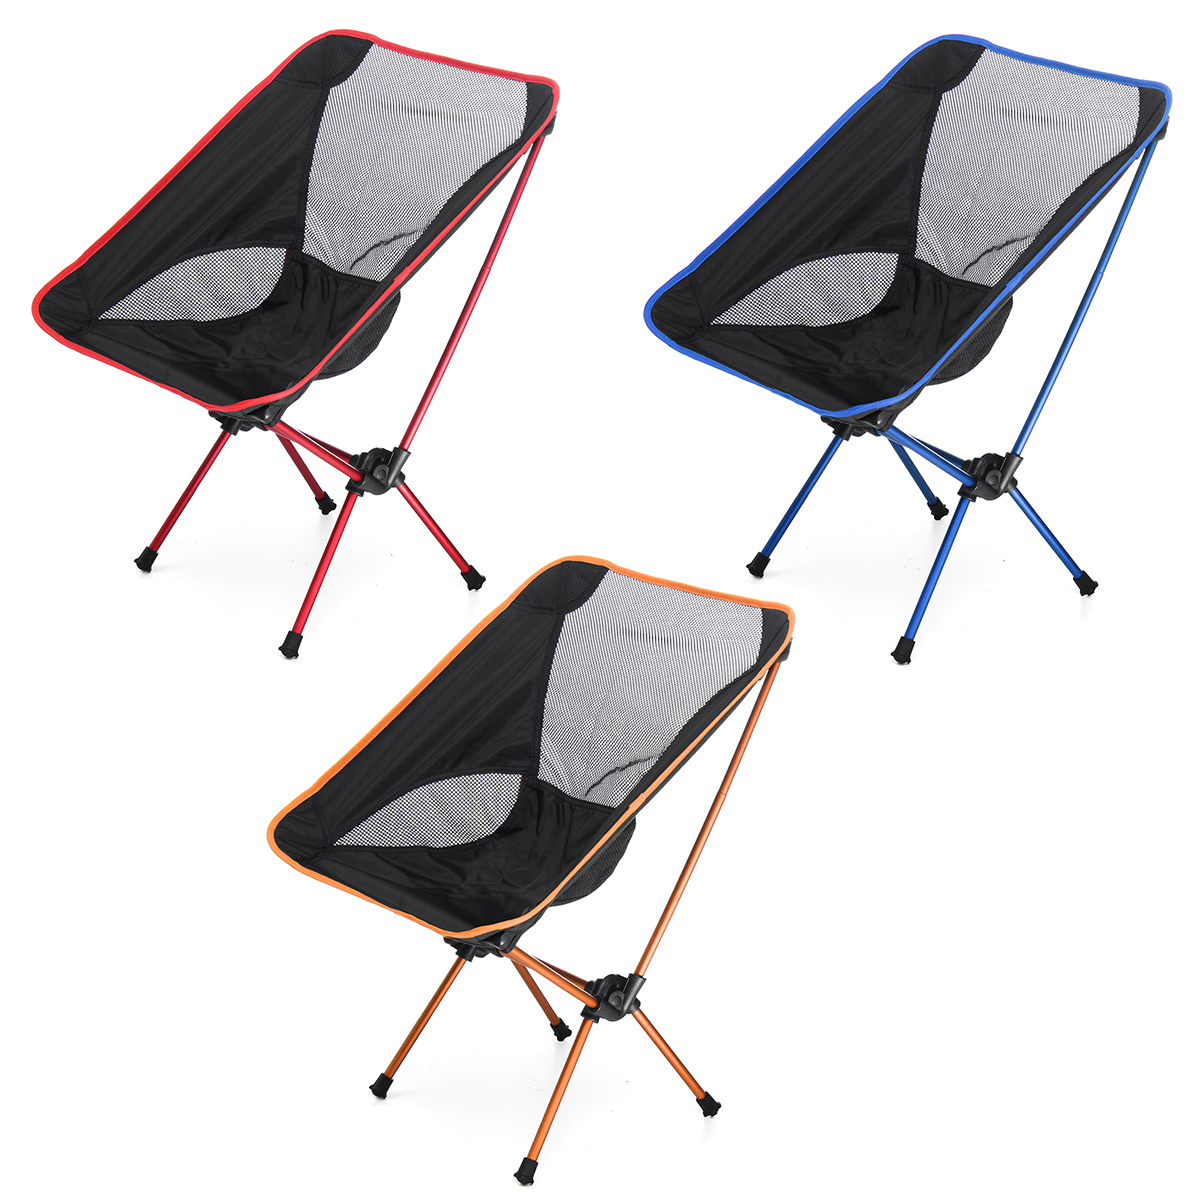 Portable Folding Camping Stool Foldable Fishing Chair Seat with Backpack For Fishing Picnic BBQ Cycling Hiking portable folding camping stool foldable fishing chair seat with backpack for fishing picnic bbq cycling hiking